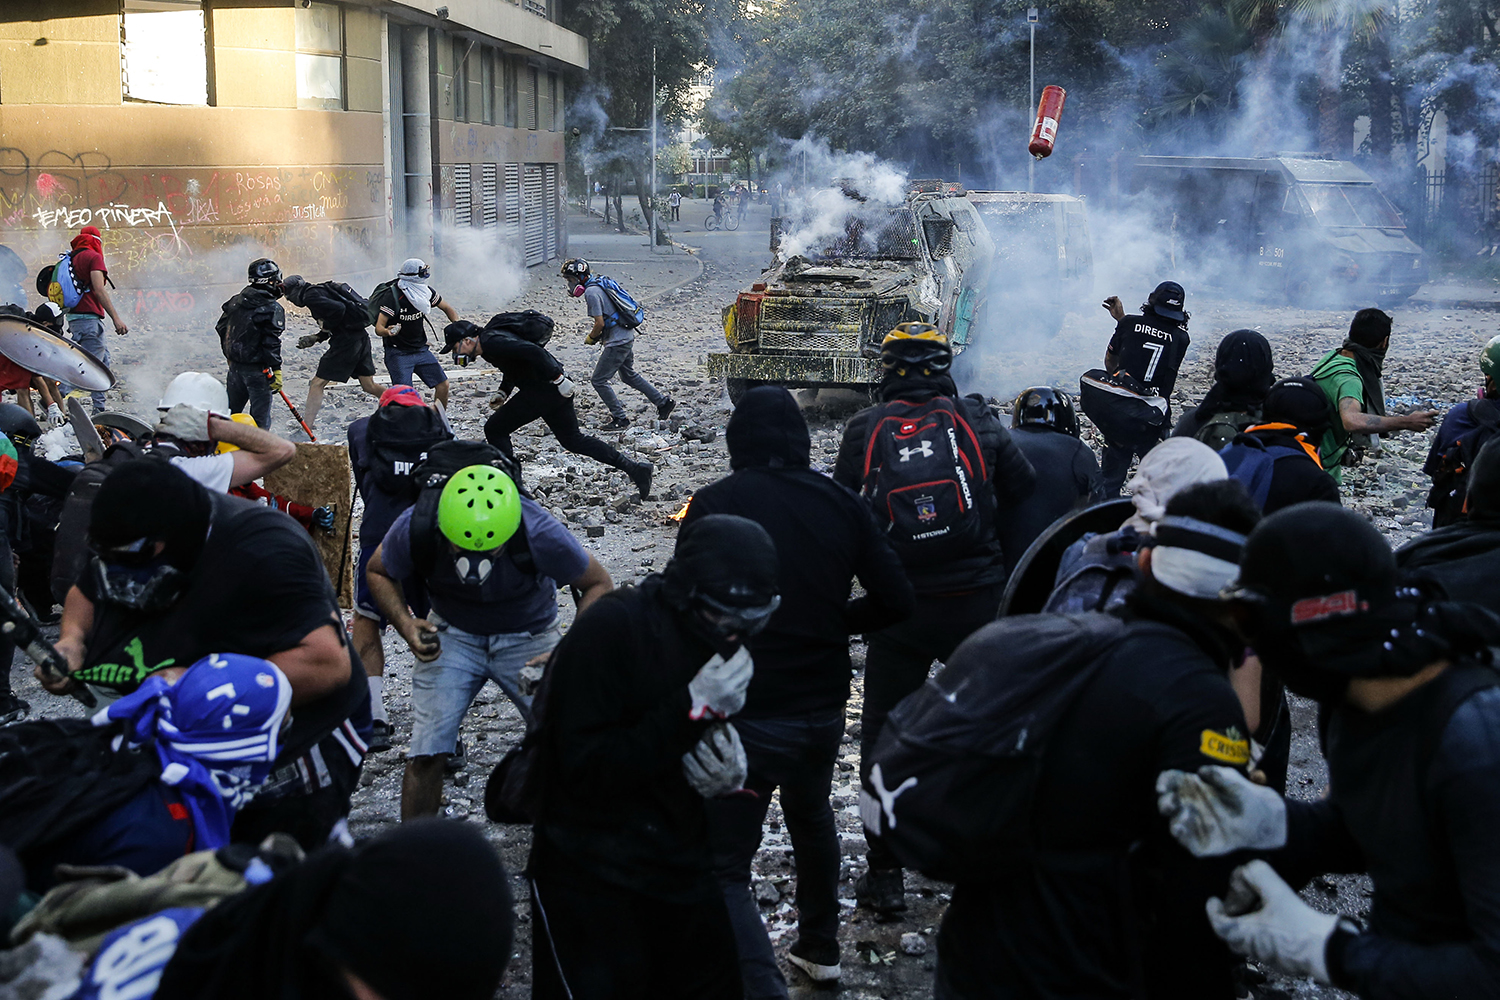 Demonstrators clash with riot police during a protest against Chilean President Sebastian Pinera's government in Santiago on Feb. 7.  JAVIER TORRES/AFP via Getty Images